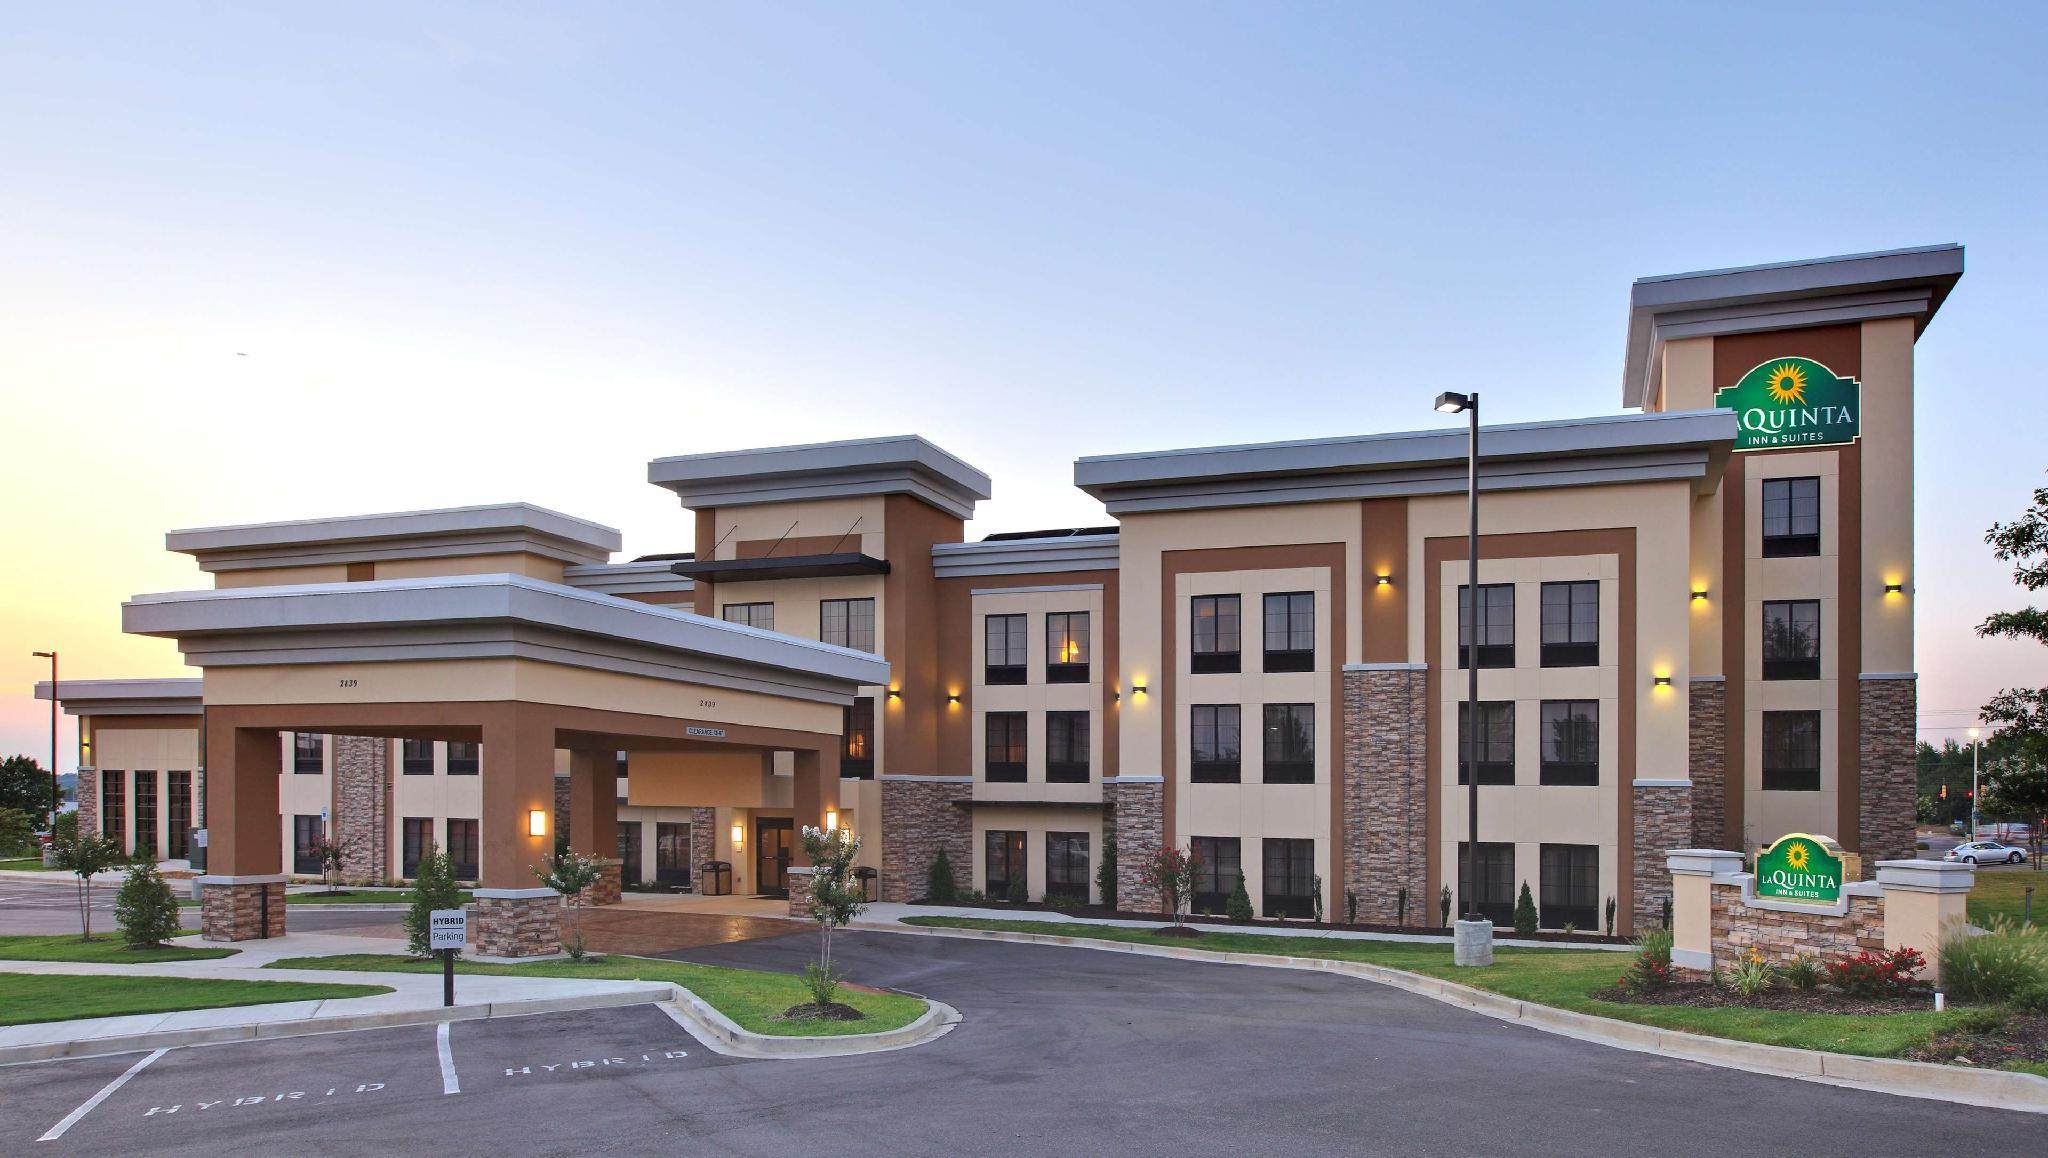 La Quinta Inn And Suites By Wyndham Memphis Wolfchase